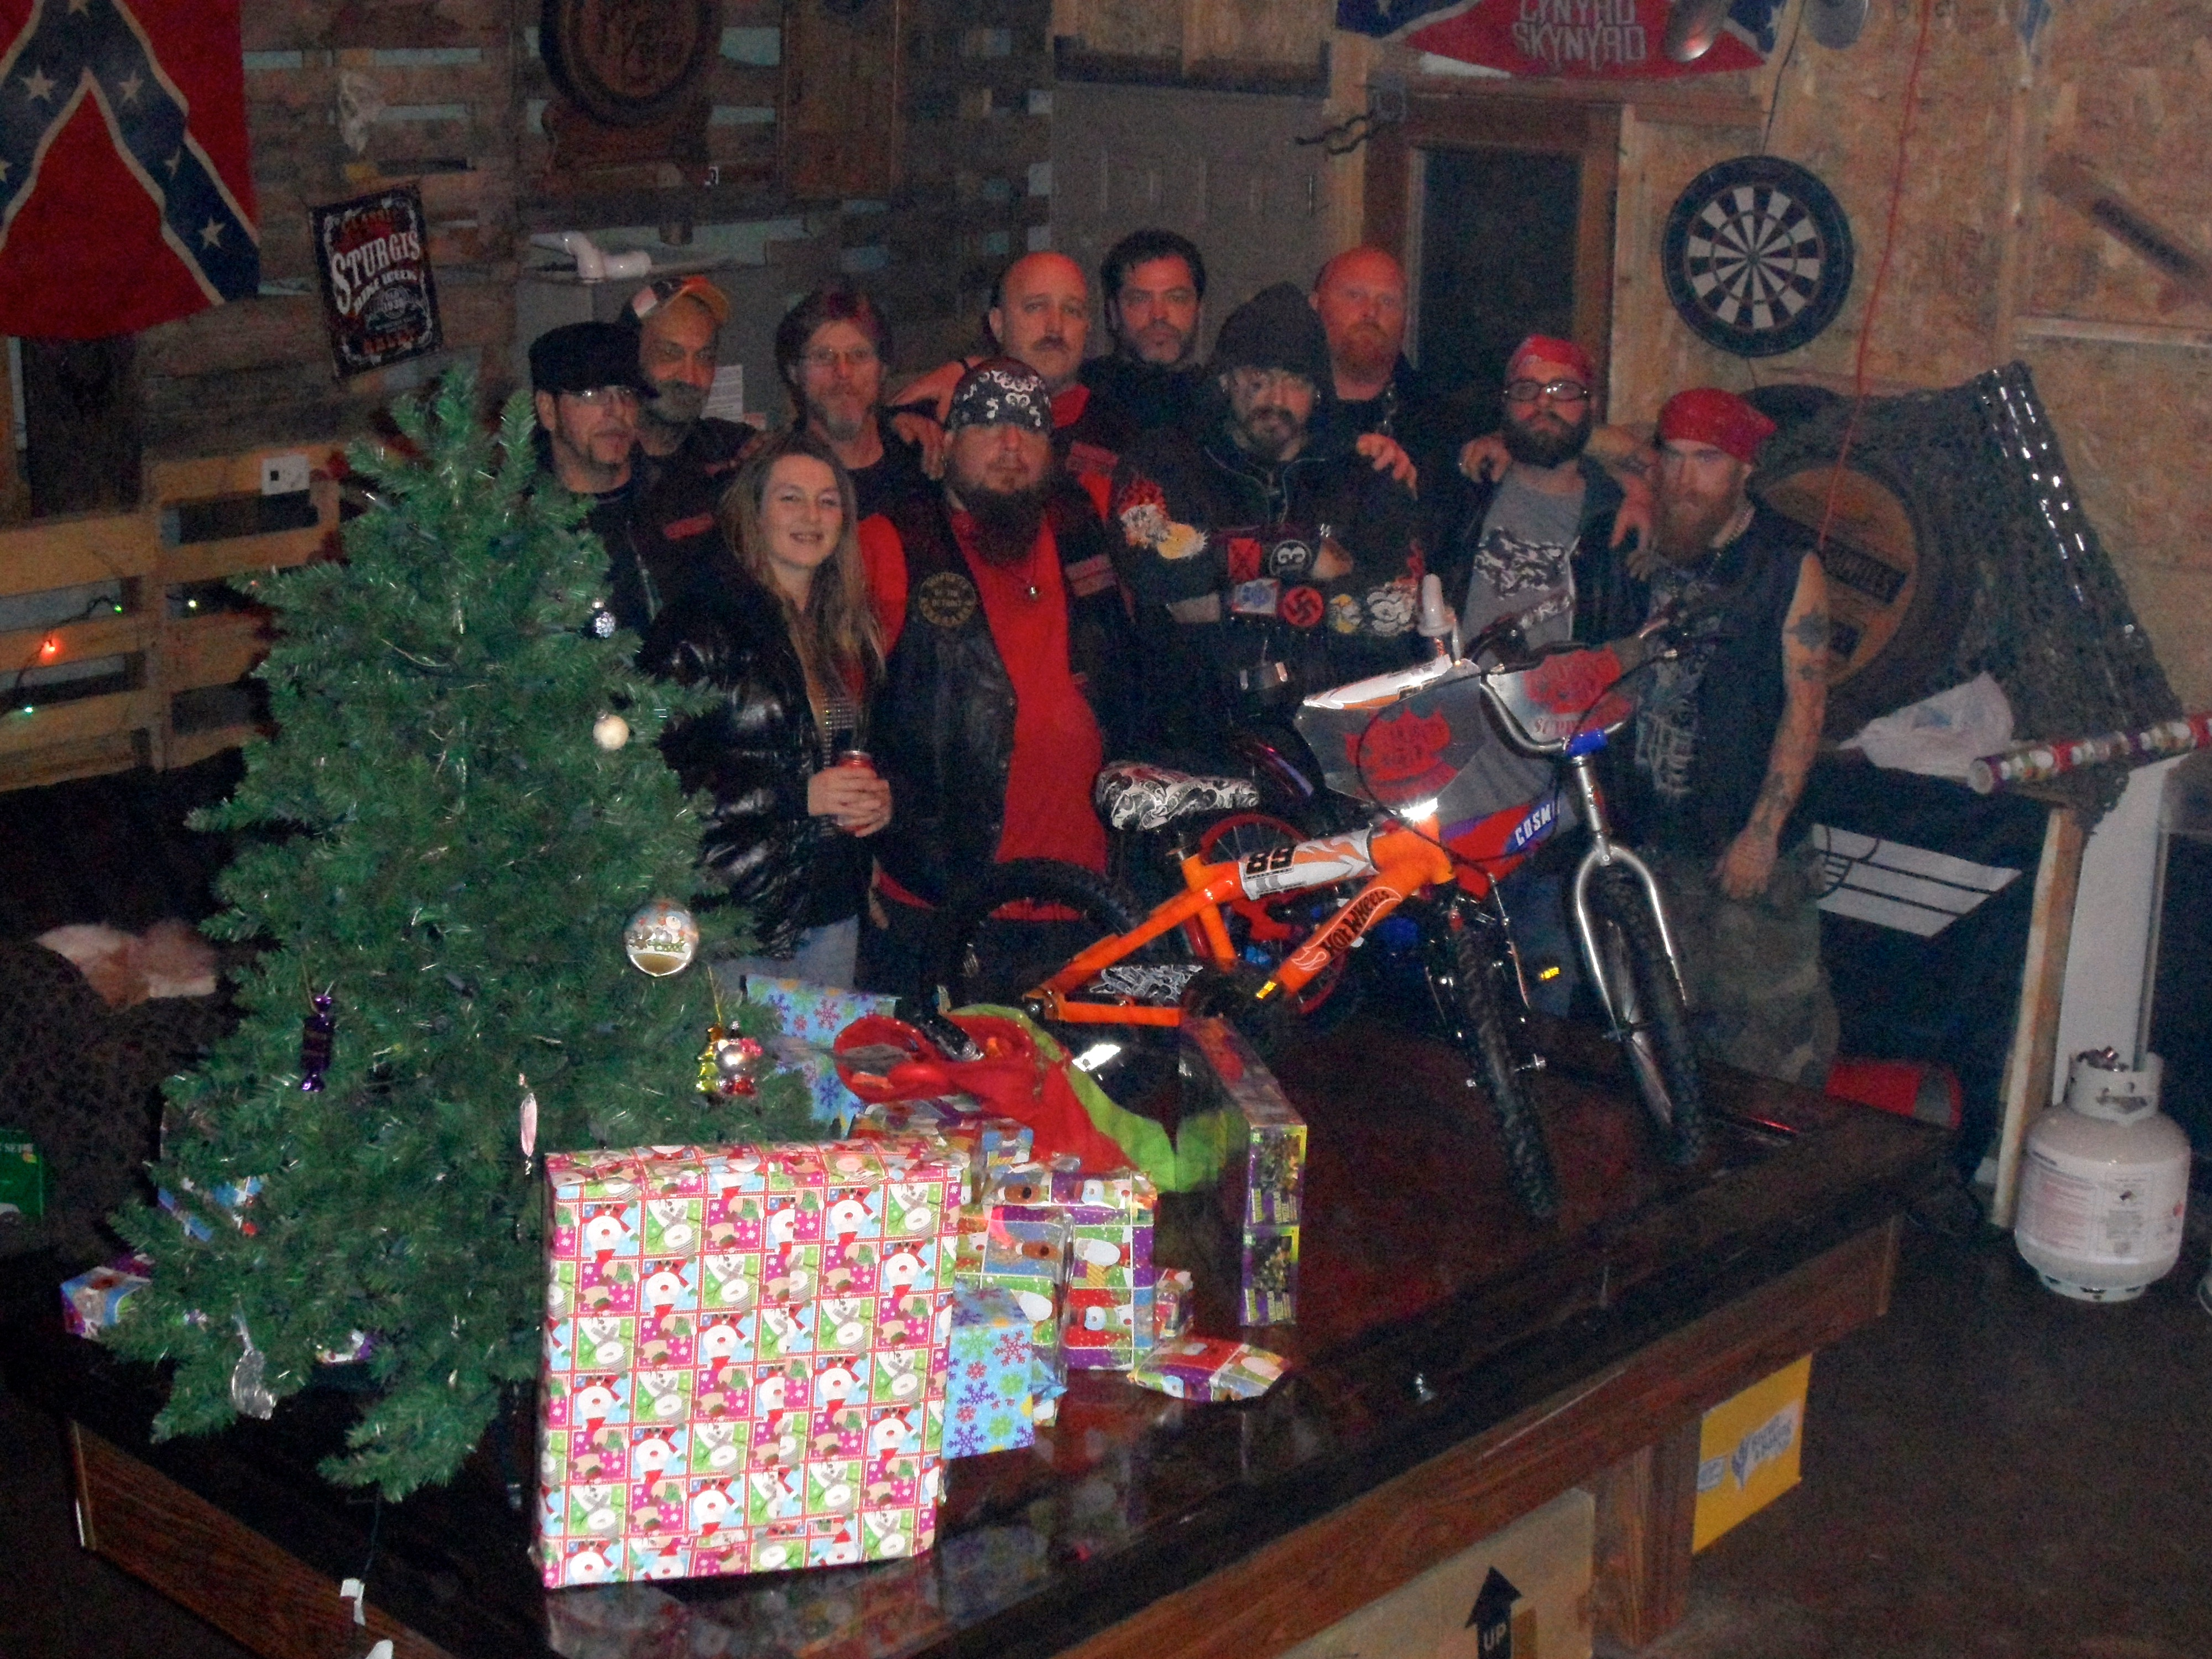 Motorcycle group brings Christmas joy to family | The Spinal Column